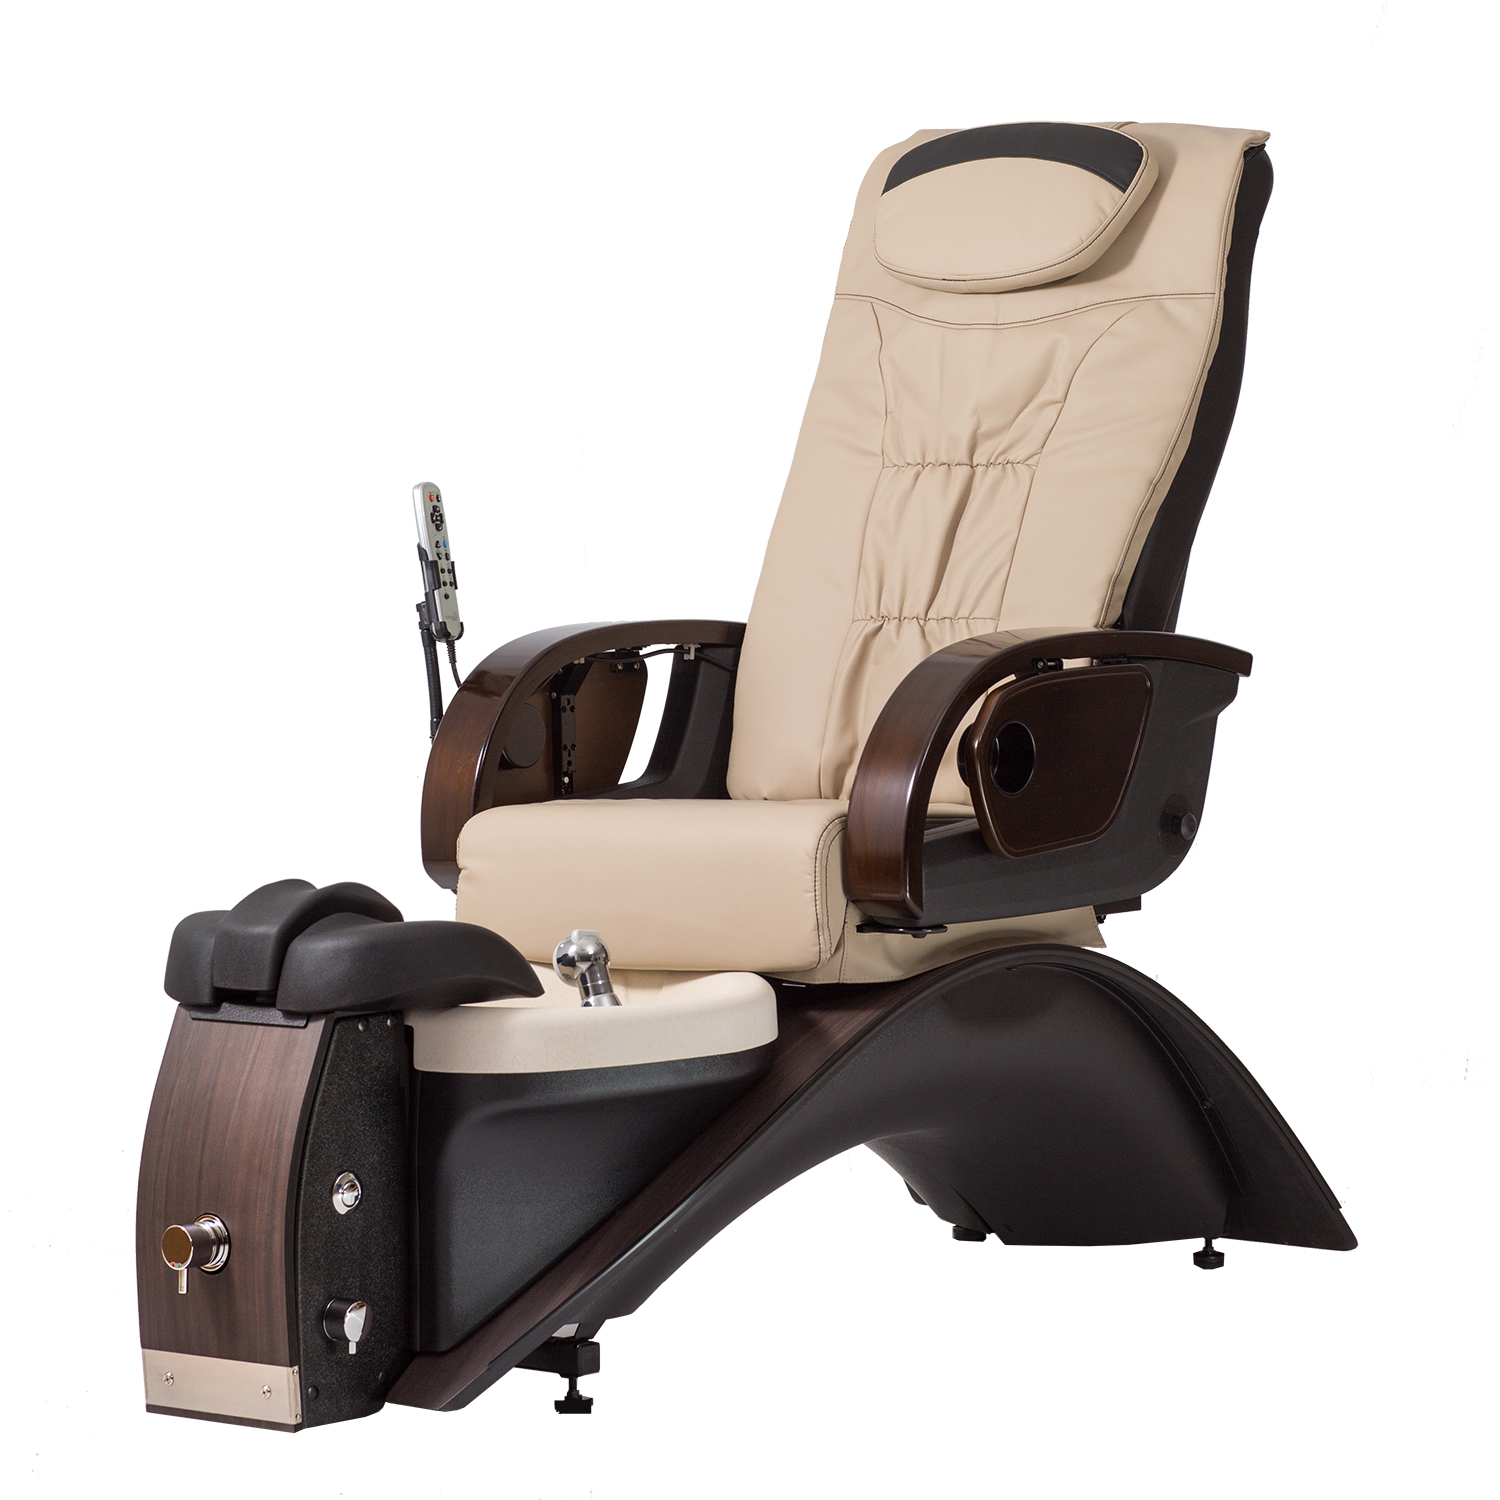 Continuum Footspas Echo Plus LE Pedicure Spa Chair alternative product image 3